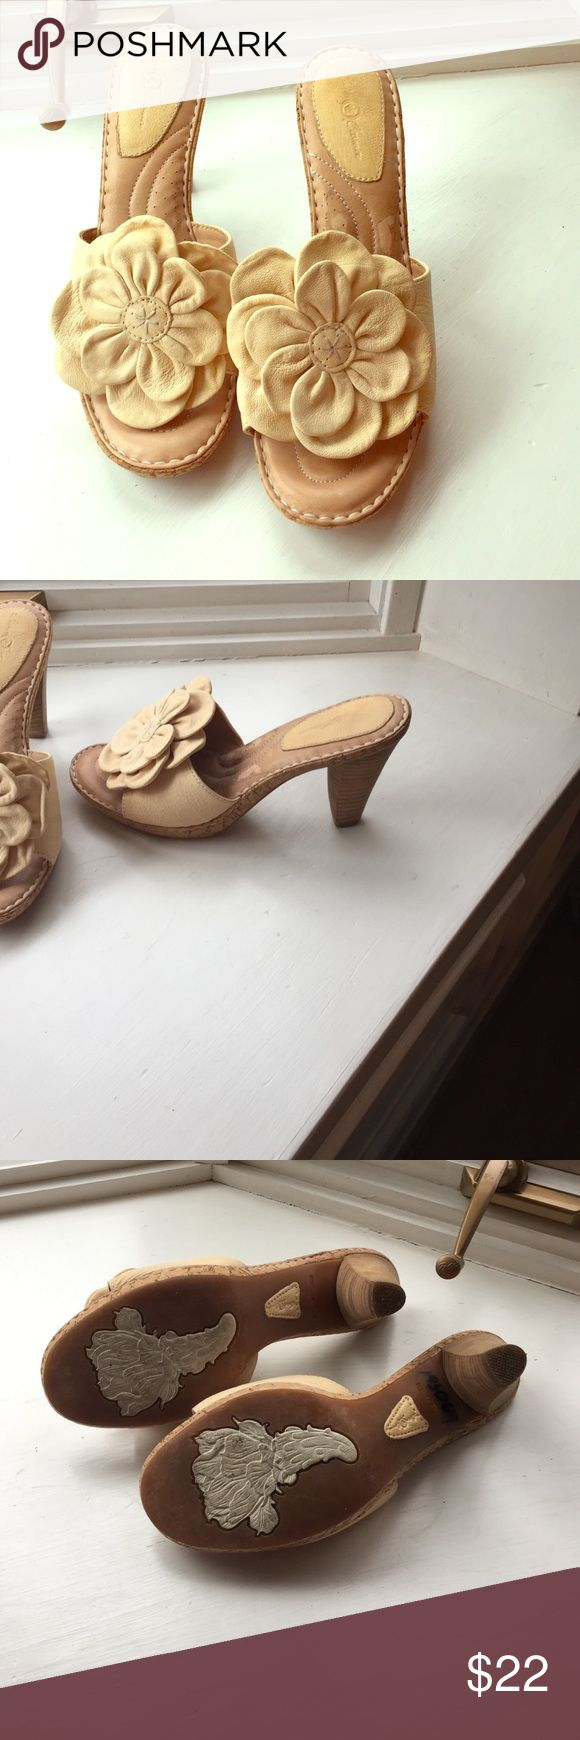 Born Crown cream sandals. Size 9 Born Crown adorable cream sandals. They are 3.5 inch heels. These shoes are great for Summer and really cute! Born Crown Shoes Sandals